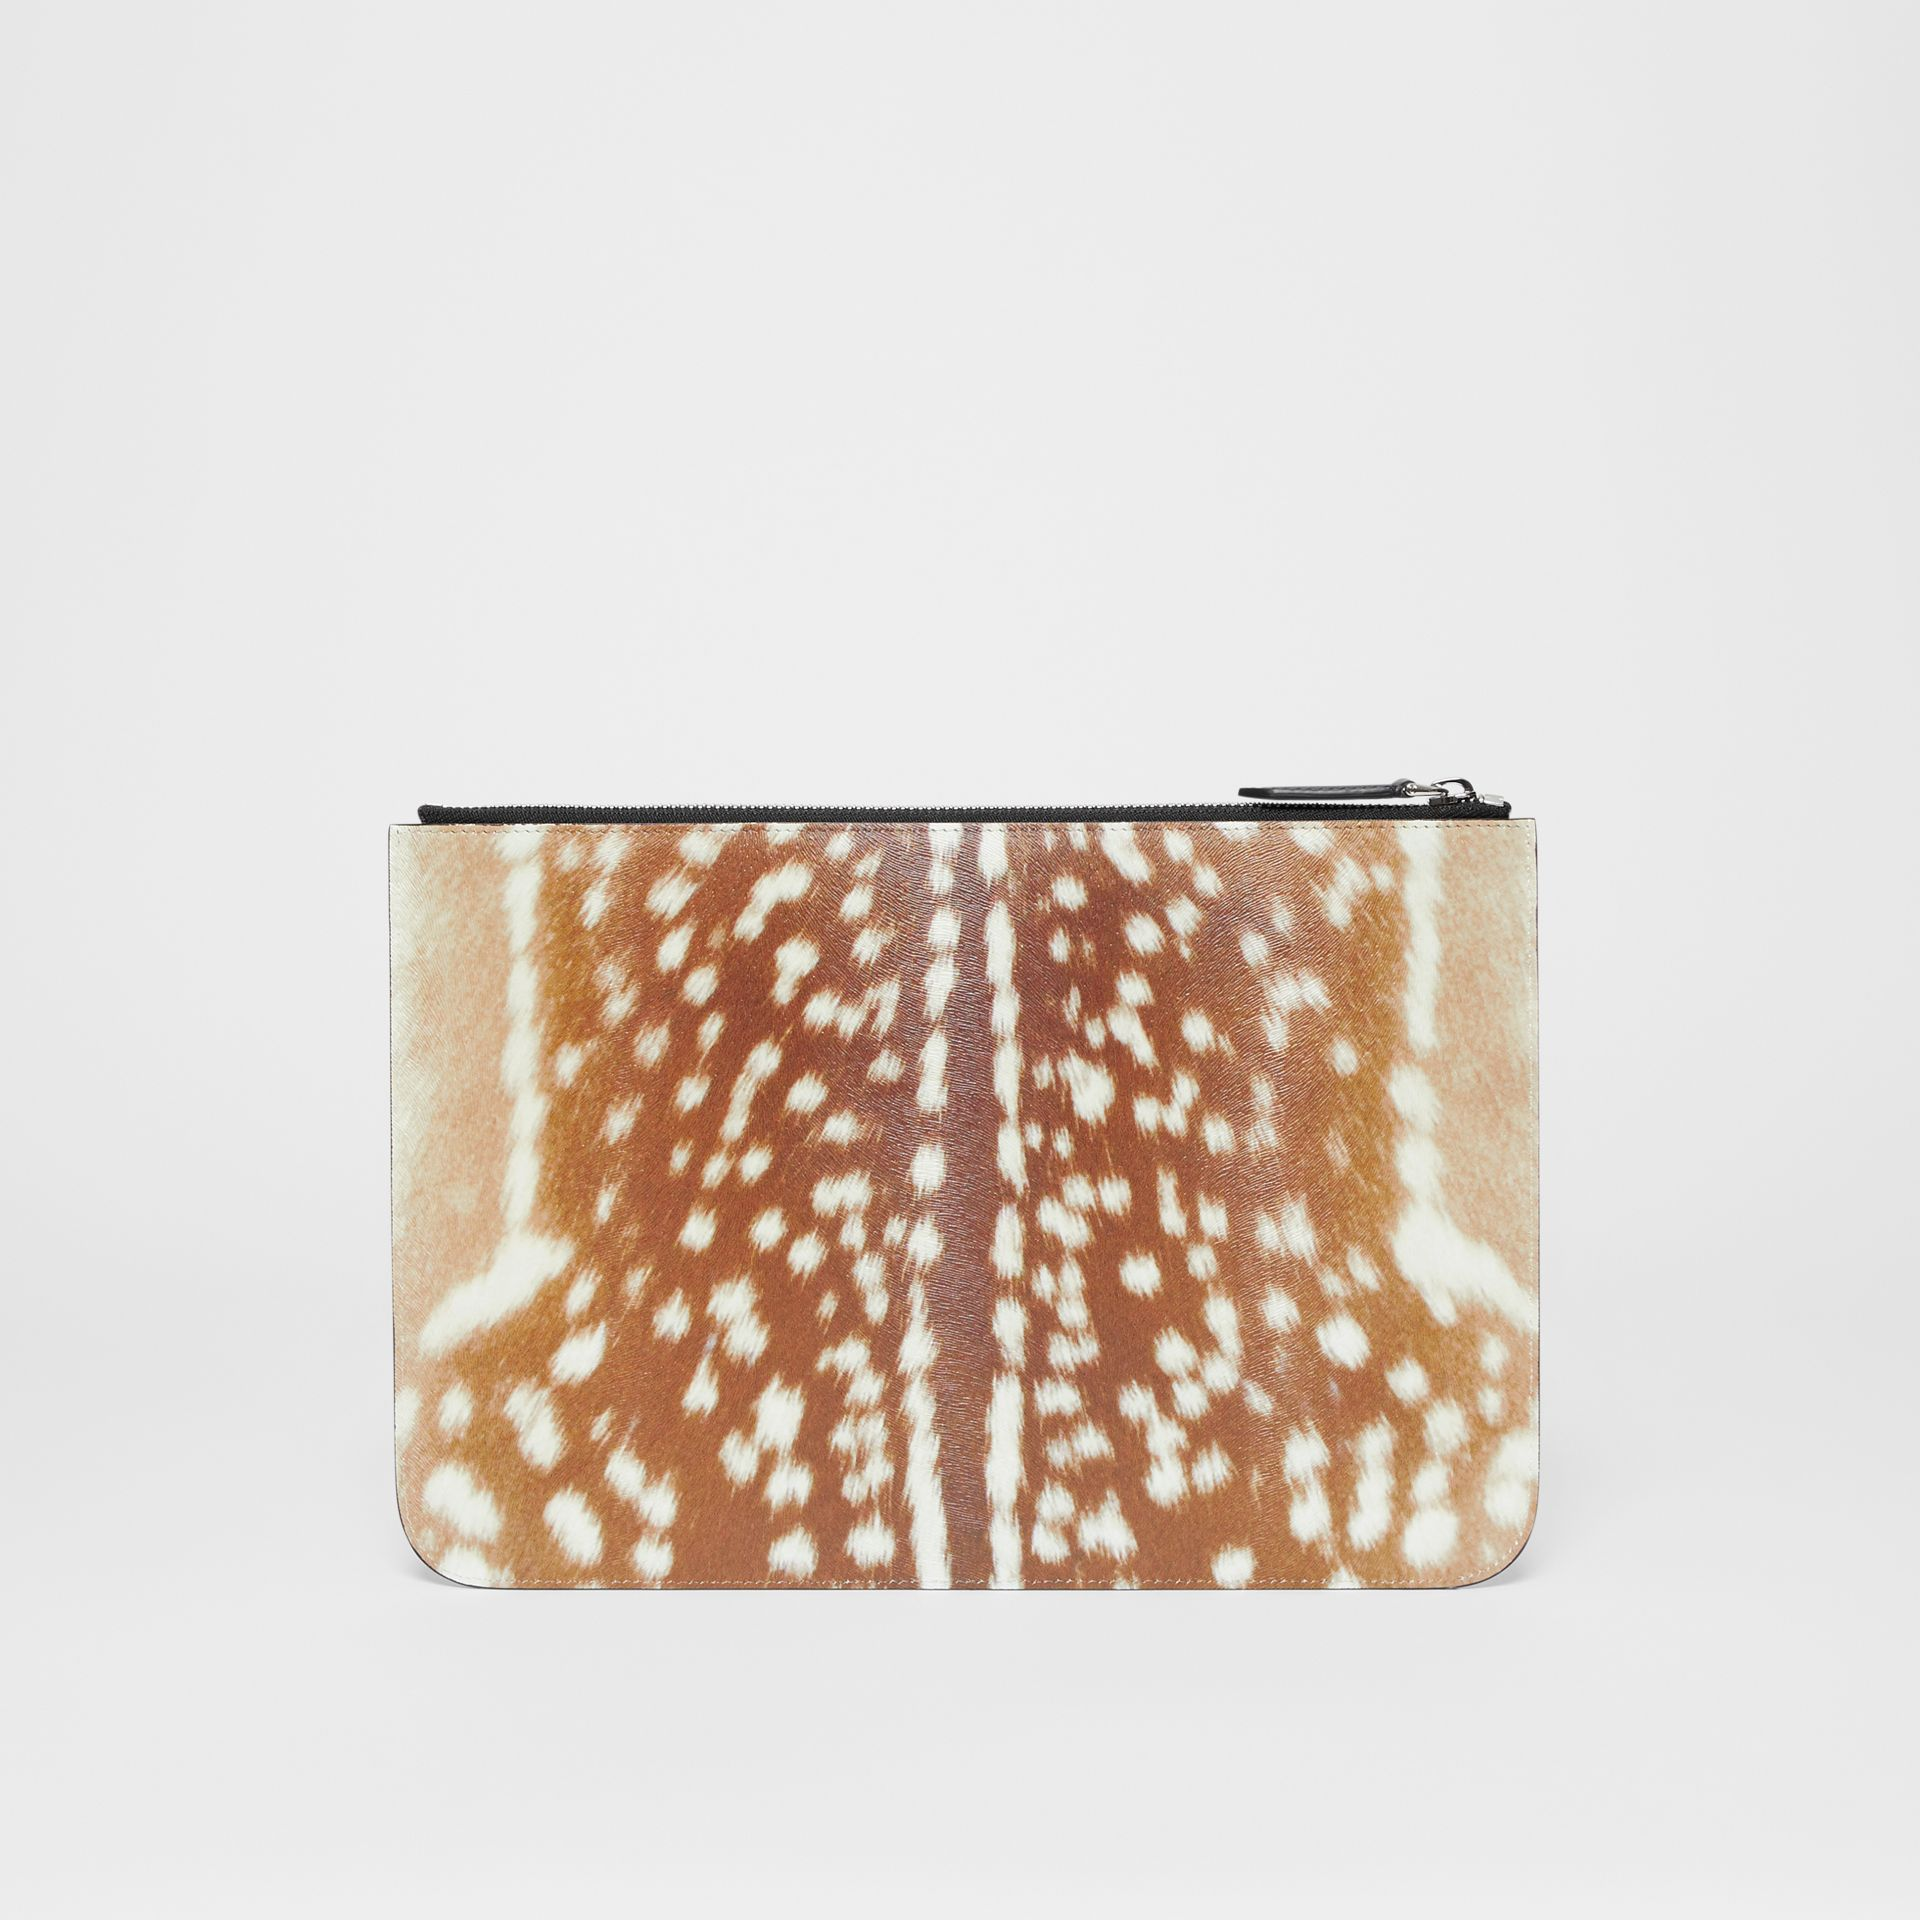 Deer Print Leather Zip Pouch in Tan | Burberry Hong Kong - gallery image 7